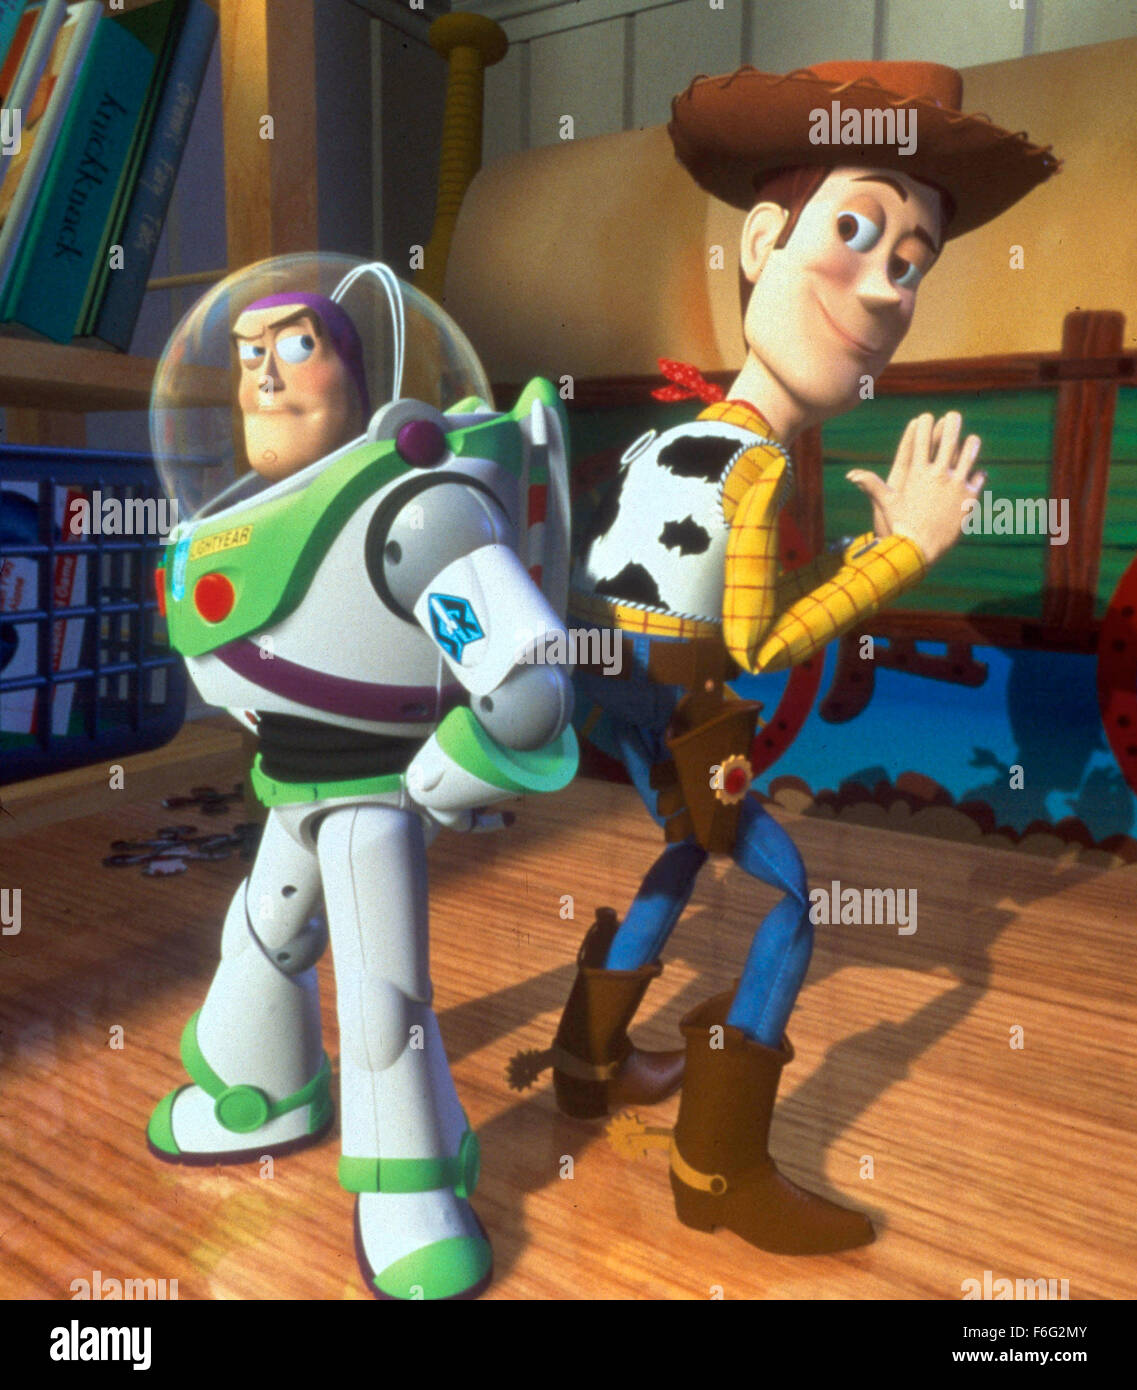 Nov 22, 1995; Hollywood, CA, USA; TIM ALLEN (left) as the voice of Buzz Lightyear and TOM HANKS as the voice of - Stock Image